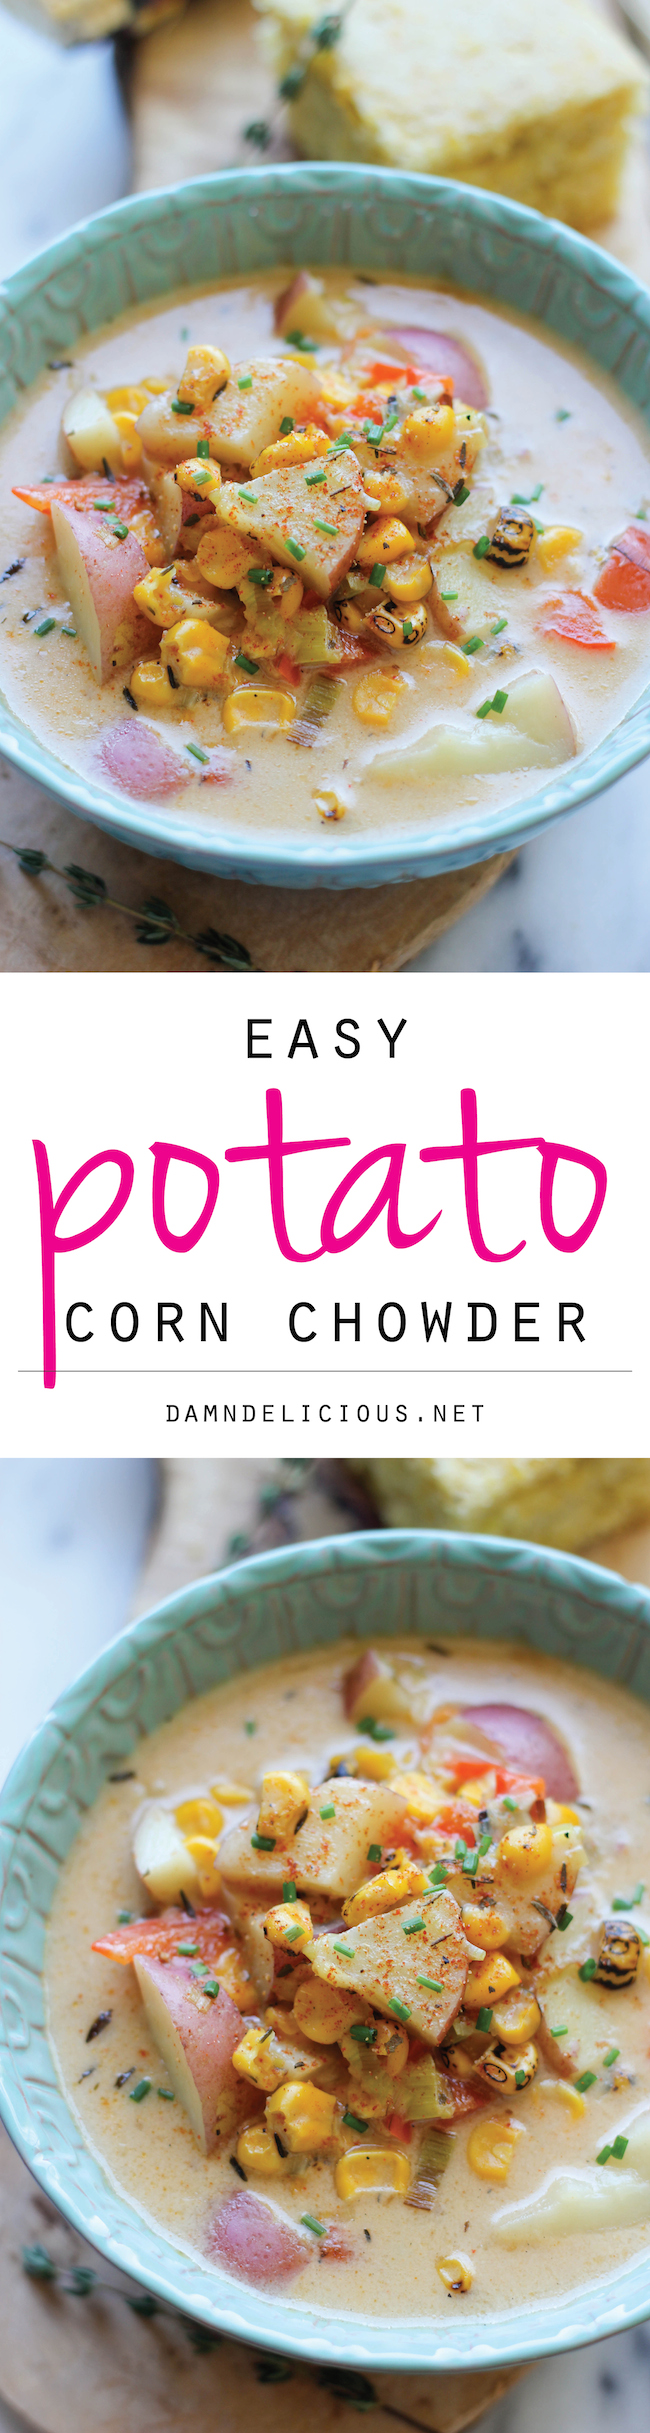 Potato Corn Chowder - A cozy, comforting and hearty potato chowder loaded with roasted corn and leeks!